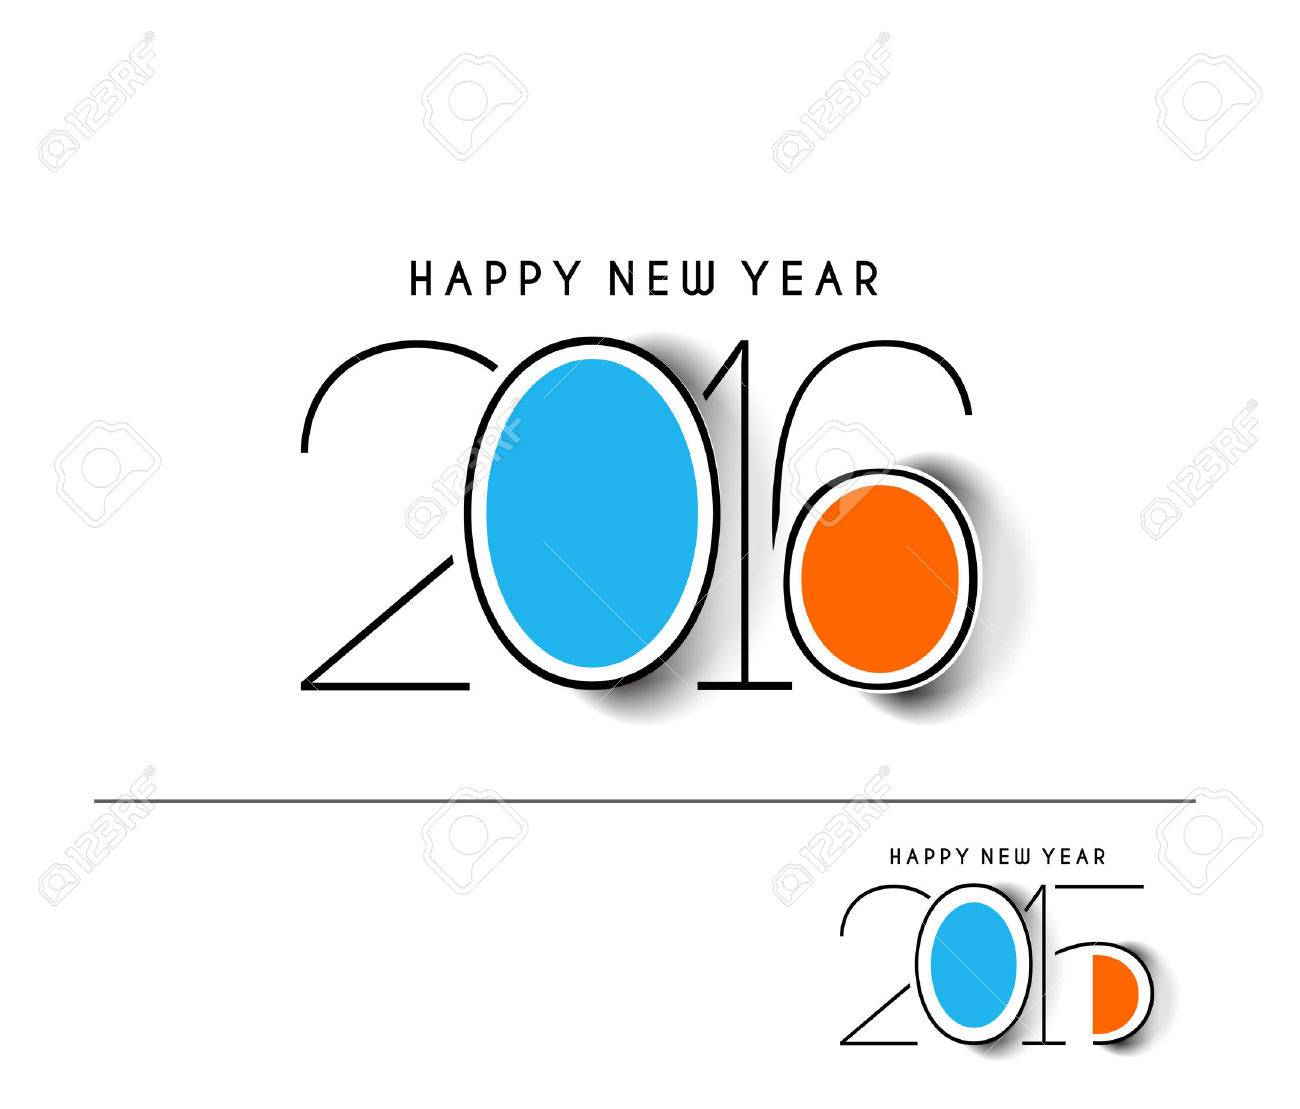 Happy new year 2016 Text Design Stock Vector - 47377475